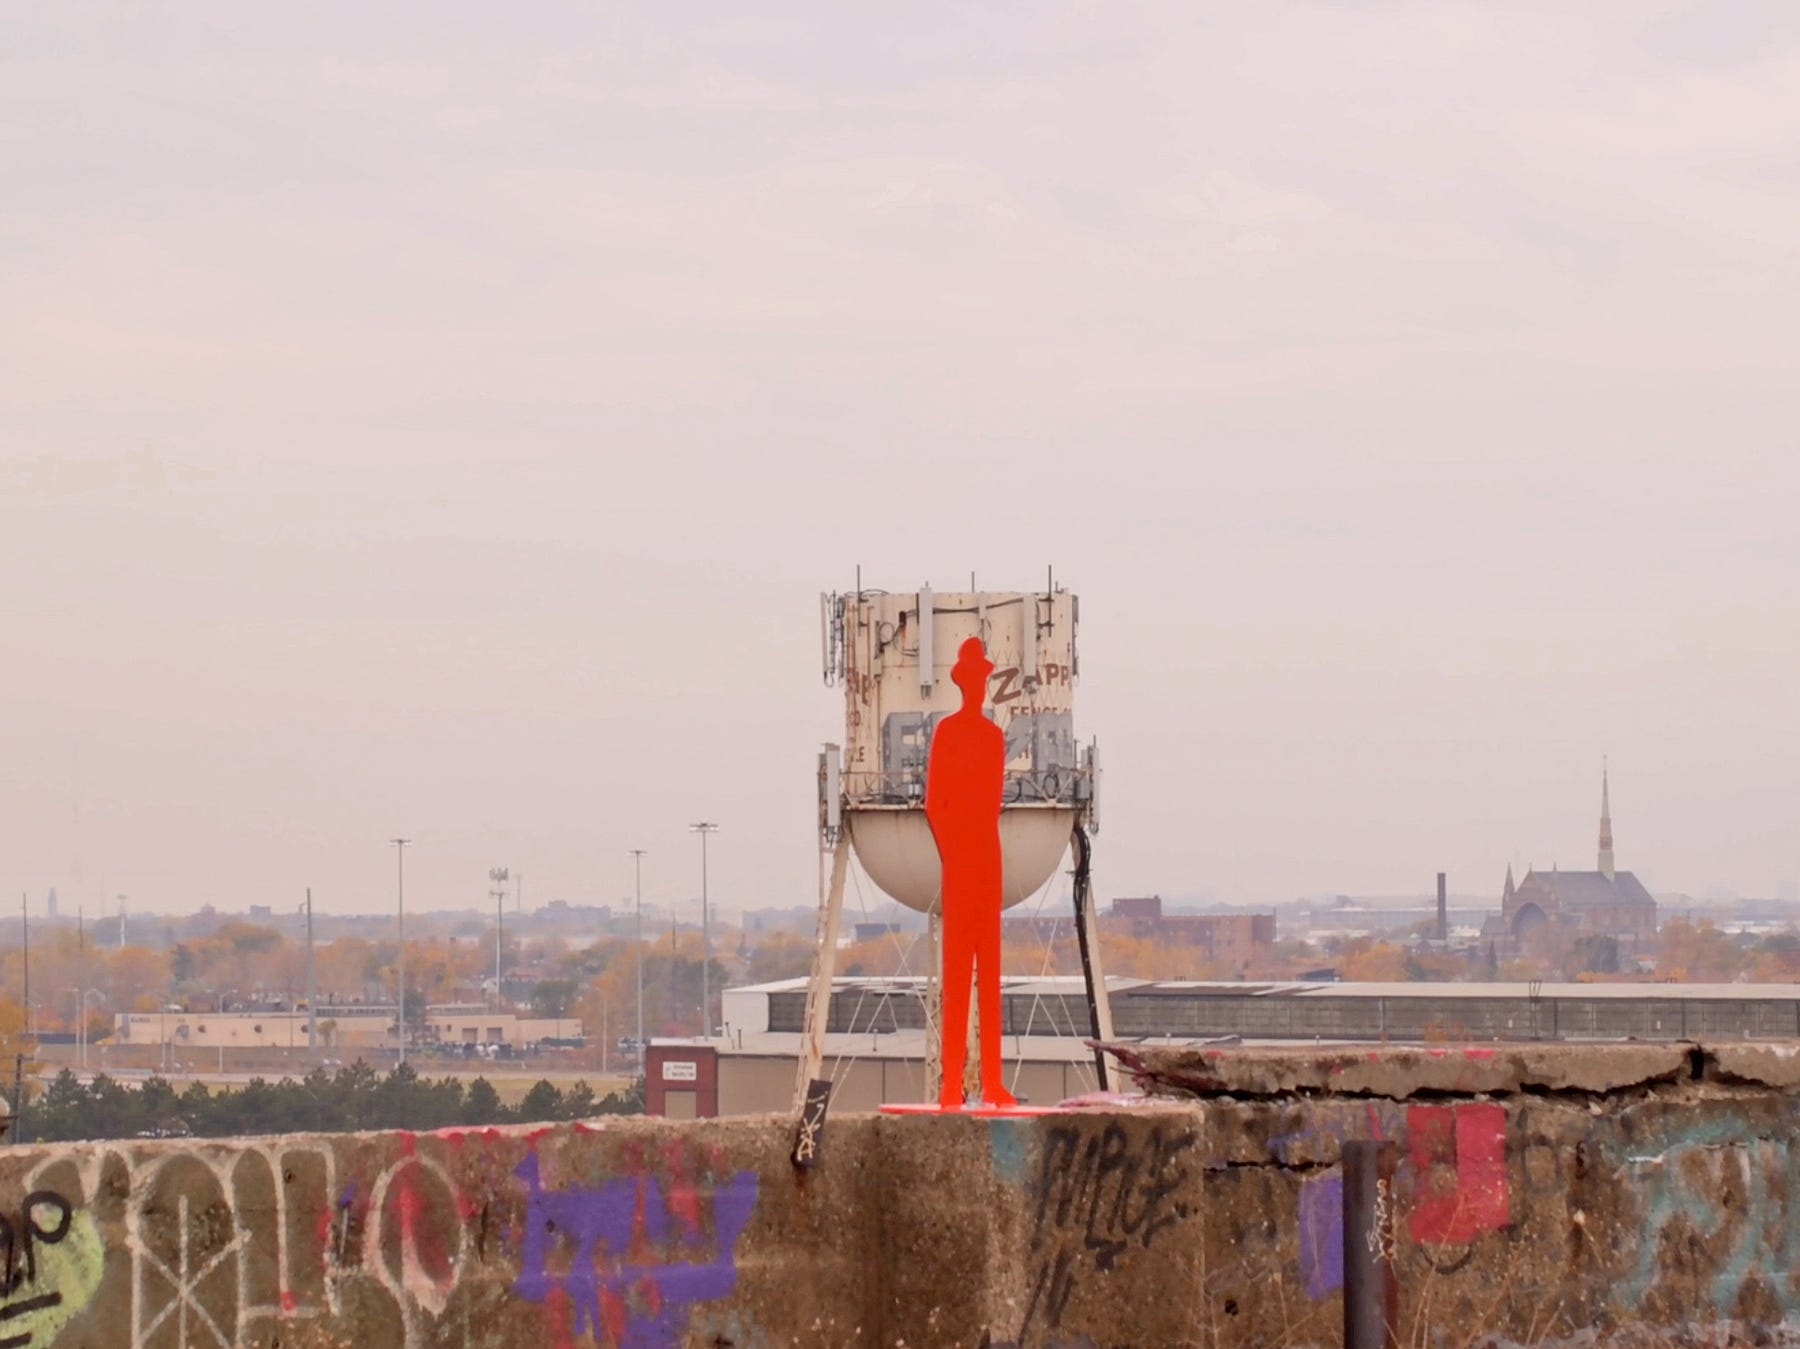 Part of John Sauve's Man in the City urban exhibition, the orange sculpture of a man adorns the Packard Plant roof in Detroit, Mich. on Saturday, October 24, 2015.